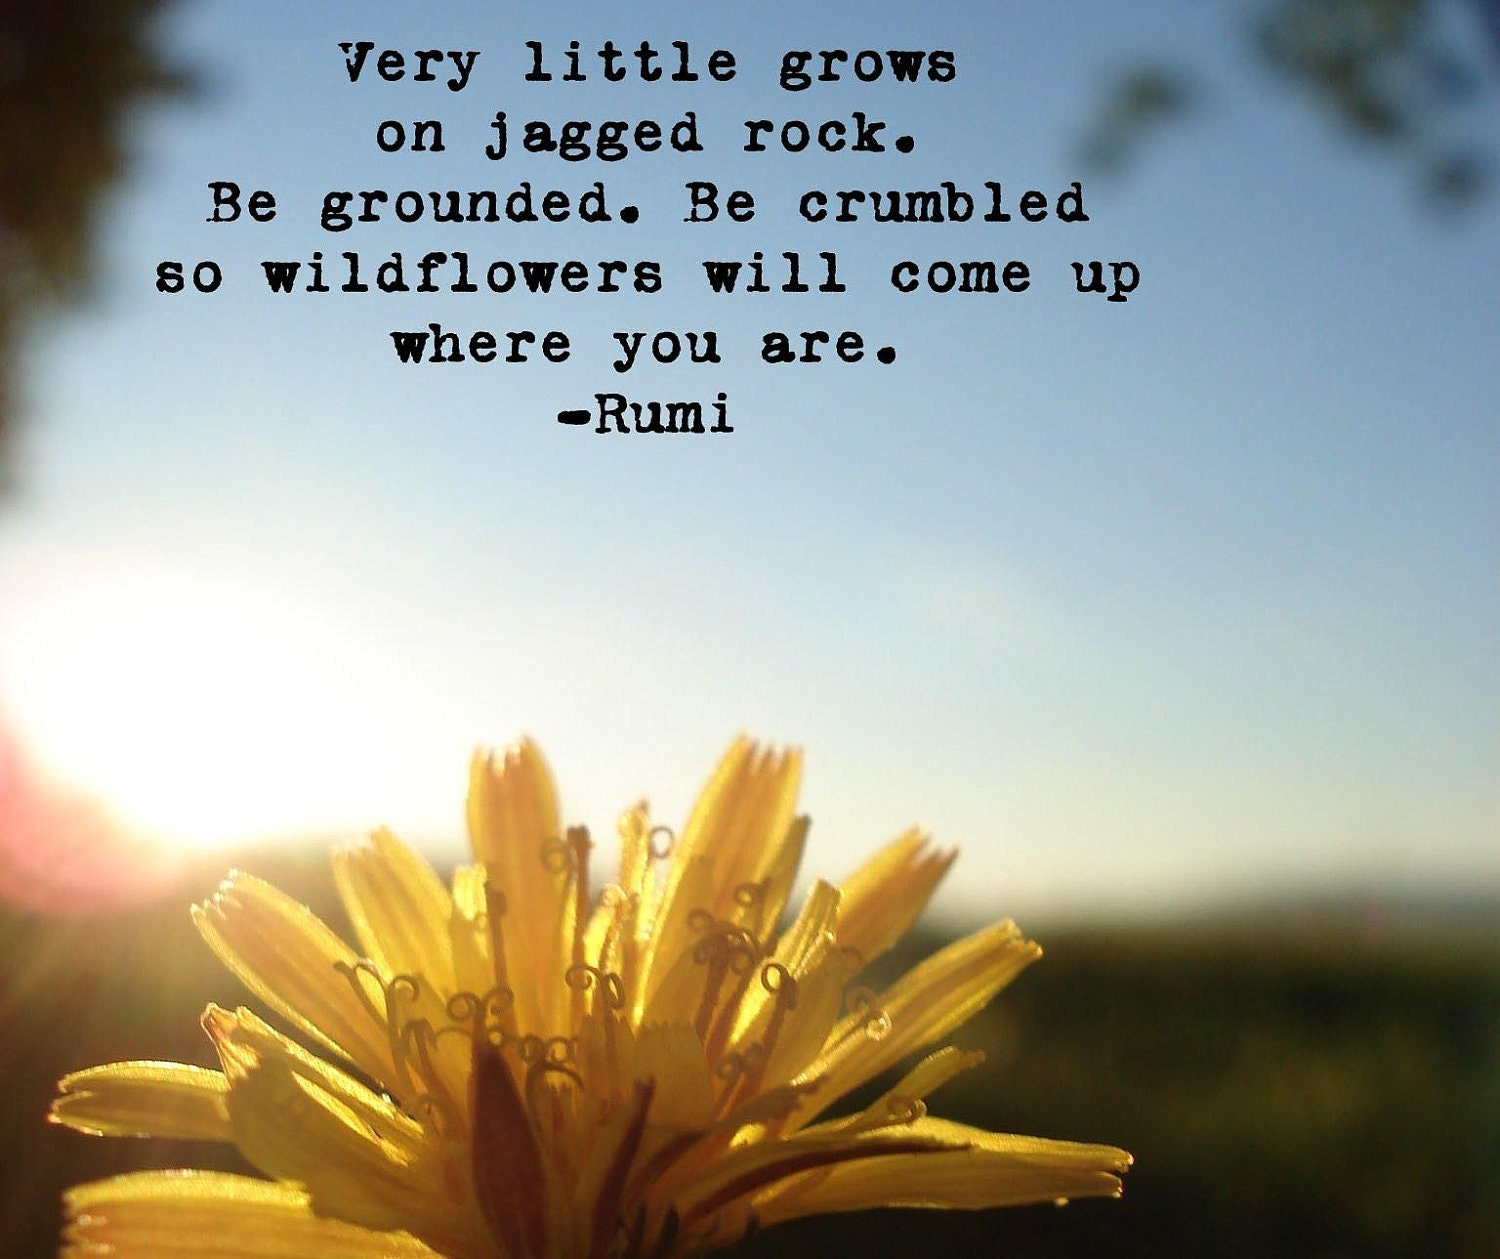 Dandelion Photograph With Rumi Quote By Fiercegreen On Etsy